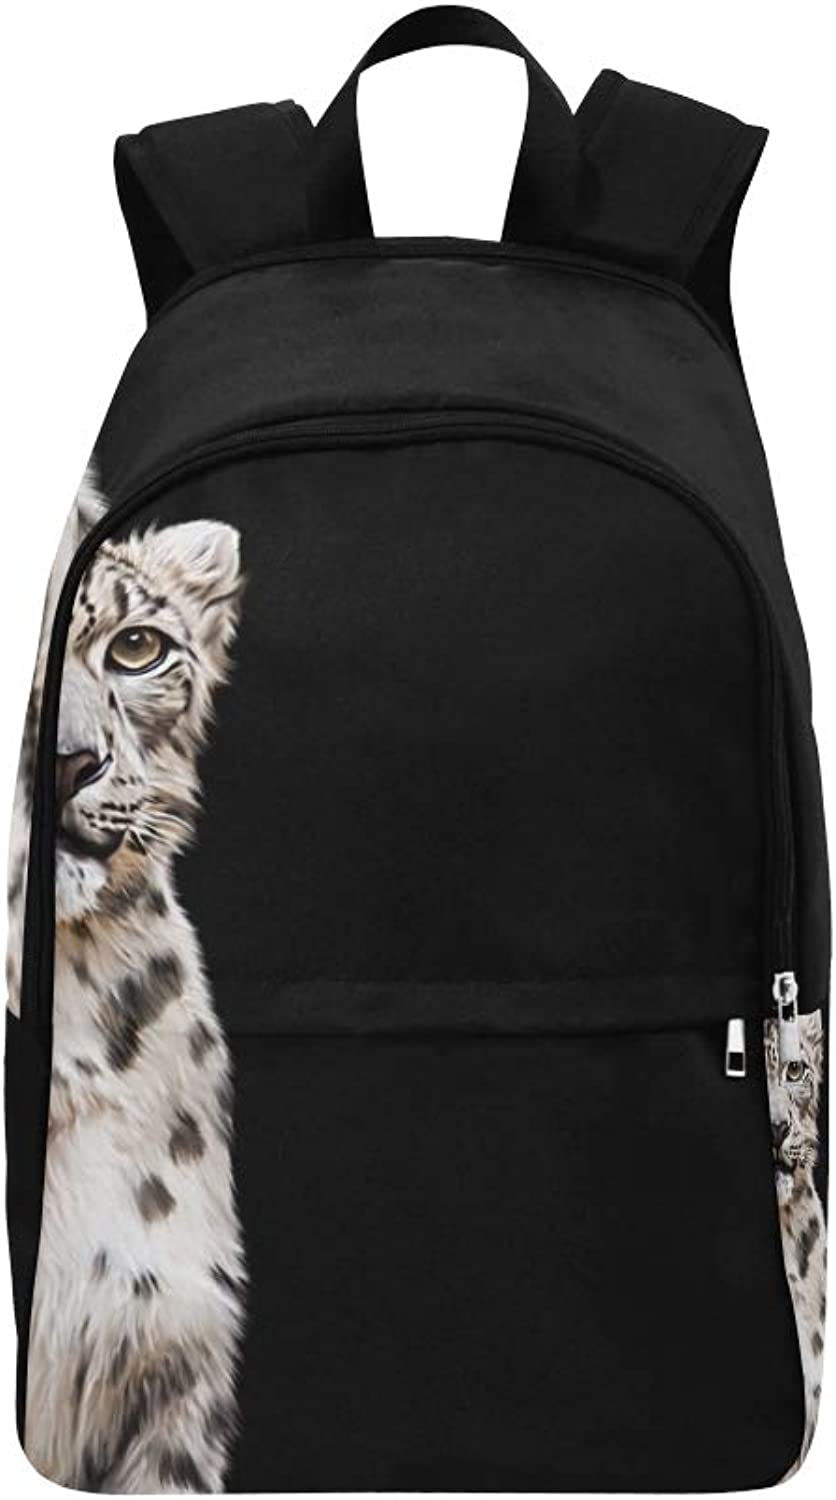 Drawing Snow Leopard Portrait On Black Casual Daypack Travel Bag College School Backpack for Mens and Women